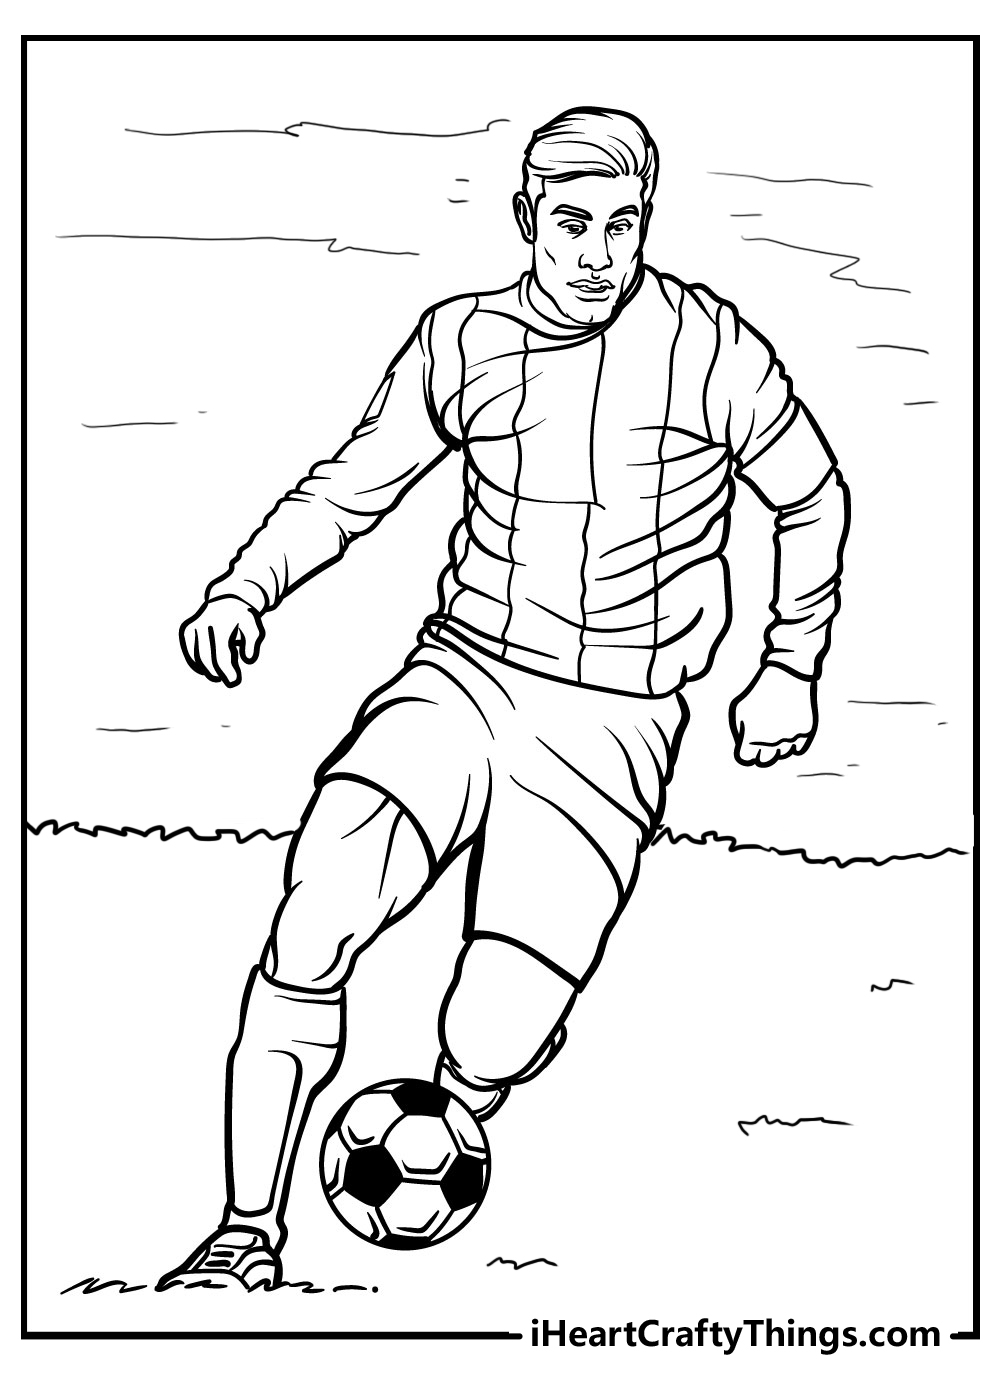 michigan football coloring pages free download